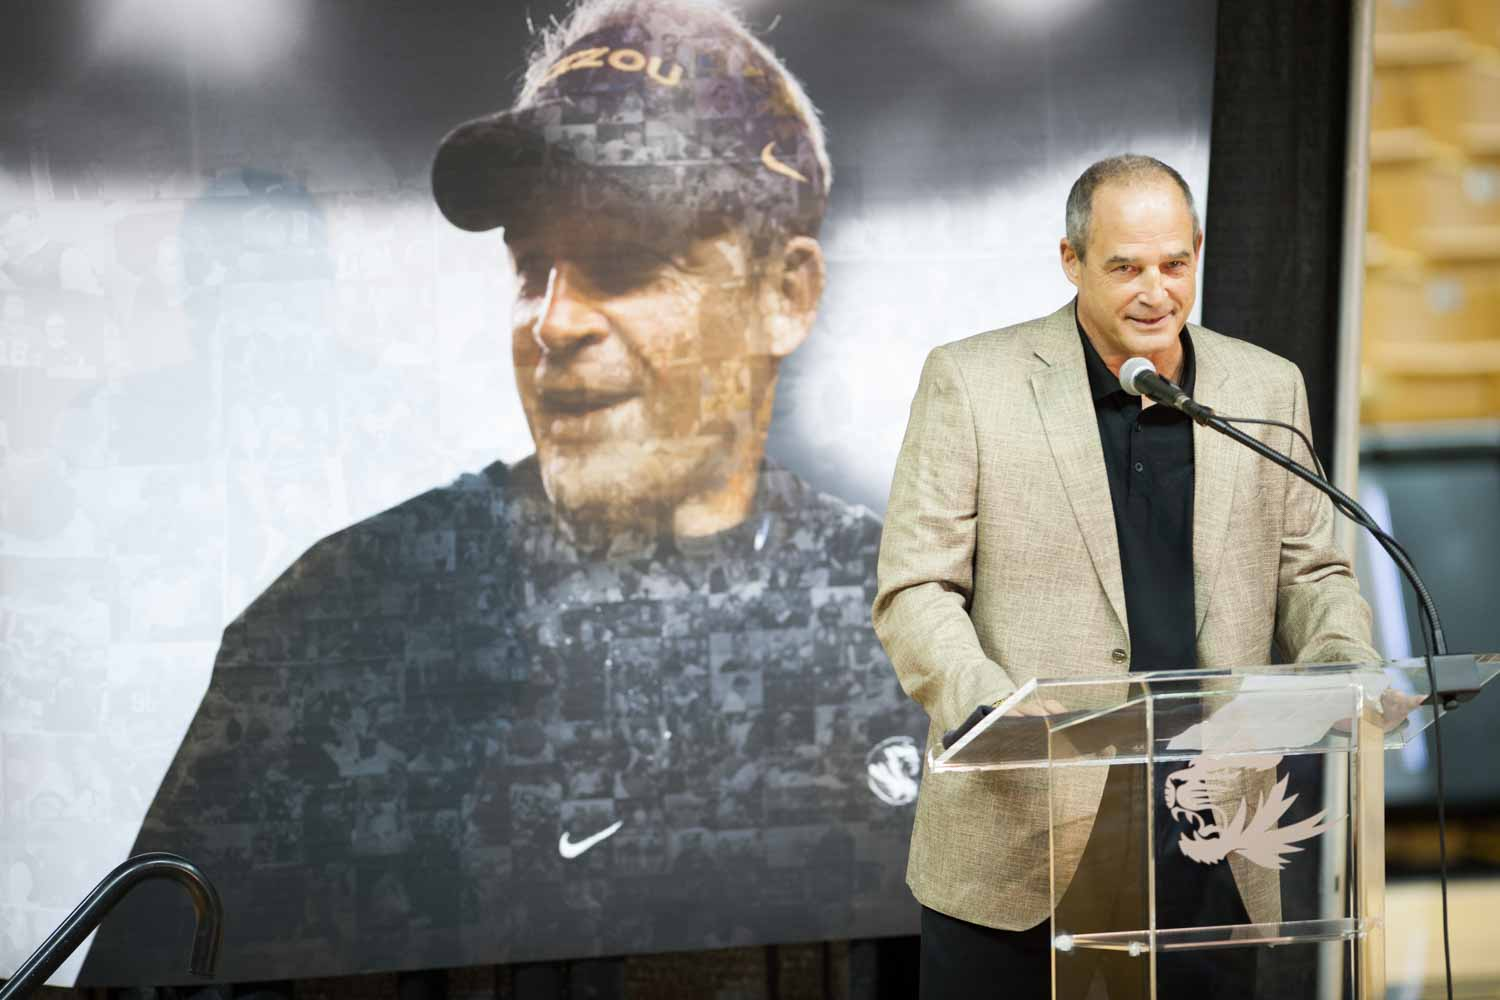 Coach Pinkel breaks a smile when talking about all the great memories he has had at Mizzou. A banner identical to the one behind him was placed by the entry/exit of Mizzou Arena where fans and members of the press could sign it and leave a message.